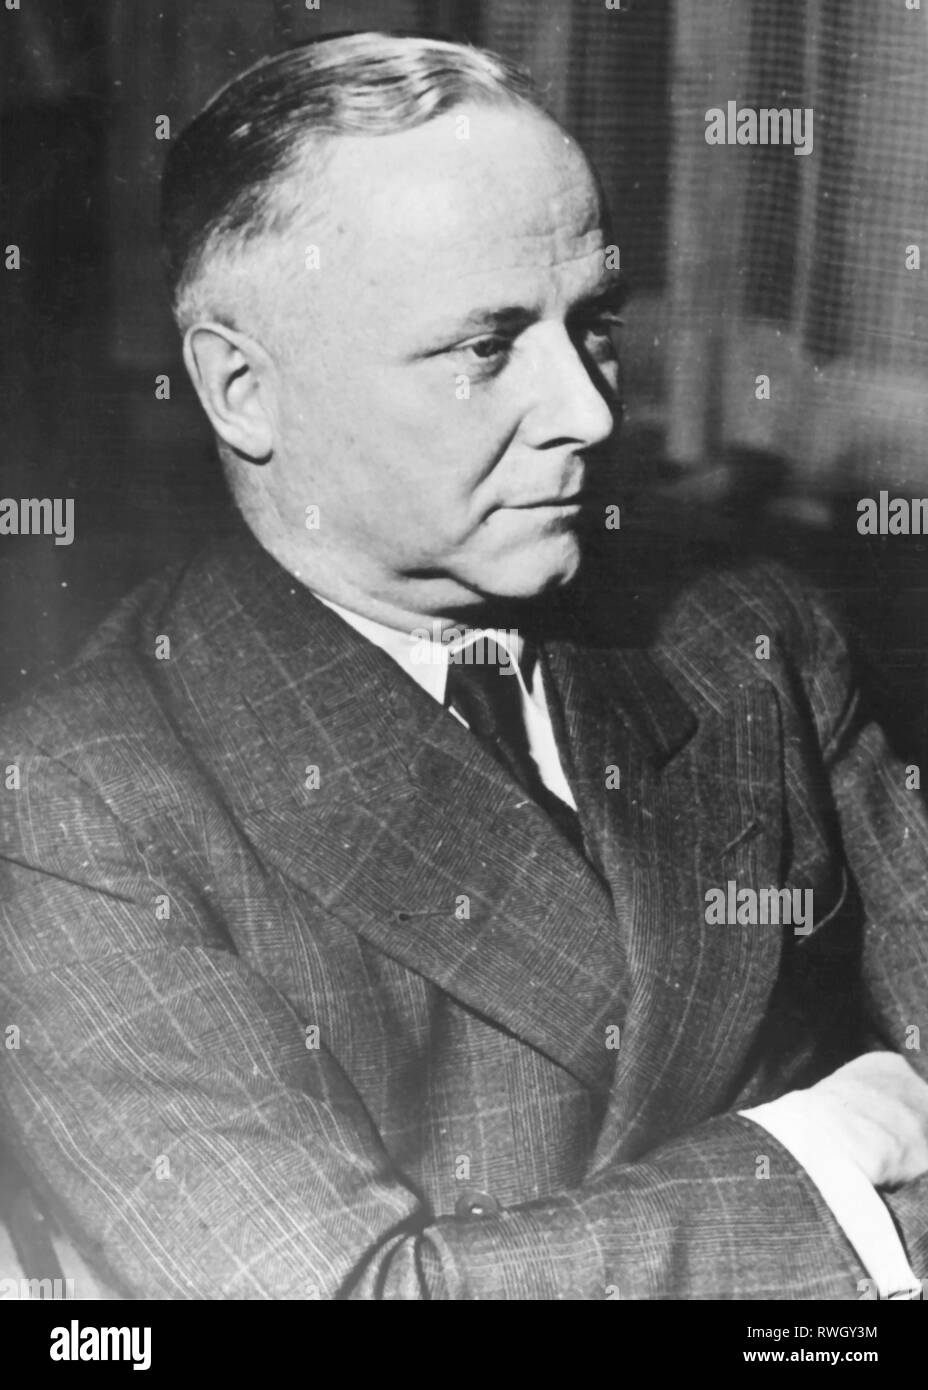 Sieveking, Kurt, 21.2.1897 - 16.3.1986, German lawyer and politician (Christian Democratic Union), German ambassador in Sweden 1951 - 1953, half-length, 31.10.1953, Additional-Rights-Clearance-Info-Not-Available - Stock Image